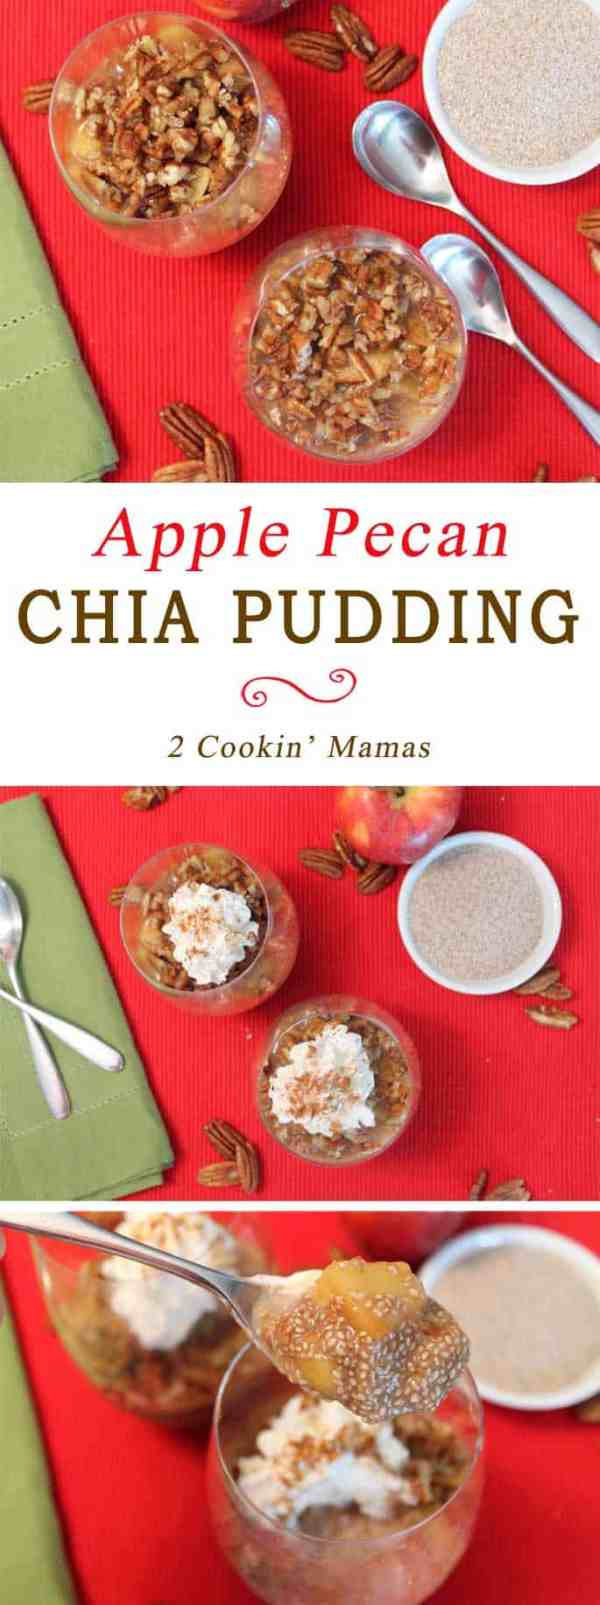 Apple Pecan Chia Pudding | 2 Cookin Mamas This pudding can be breakfast or dessert! Chia seeds are flavored with maple syrup and apple cider then topped with cinnamon apples and pecans for the ultimate sweet healthy treat.